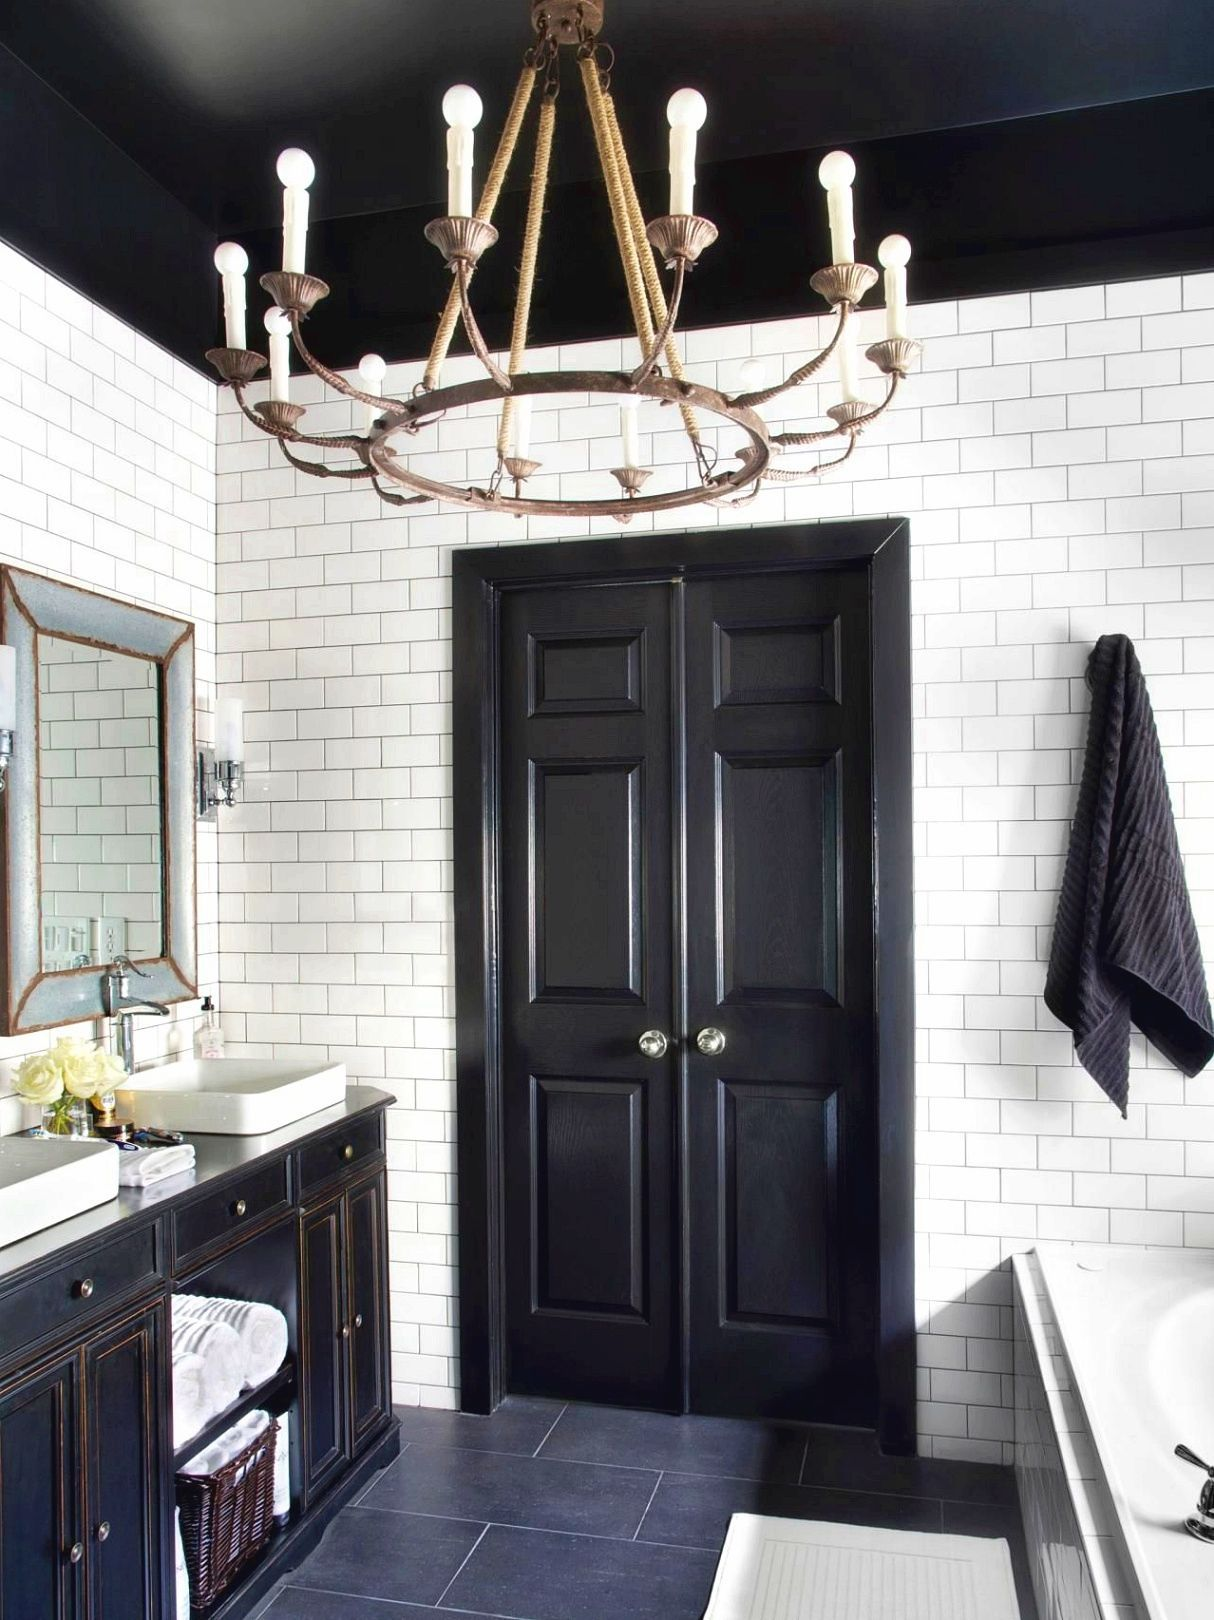 How Much Does It Cost To Remodel A Bathroom Timeless Bathroom White Master Bathroom Black White Master Bathroom